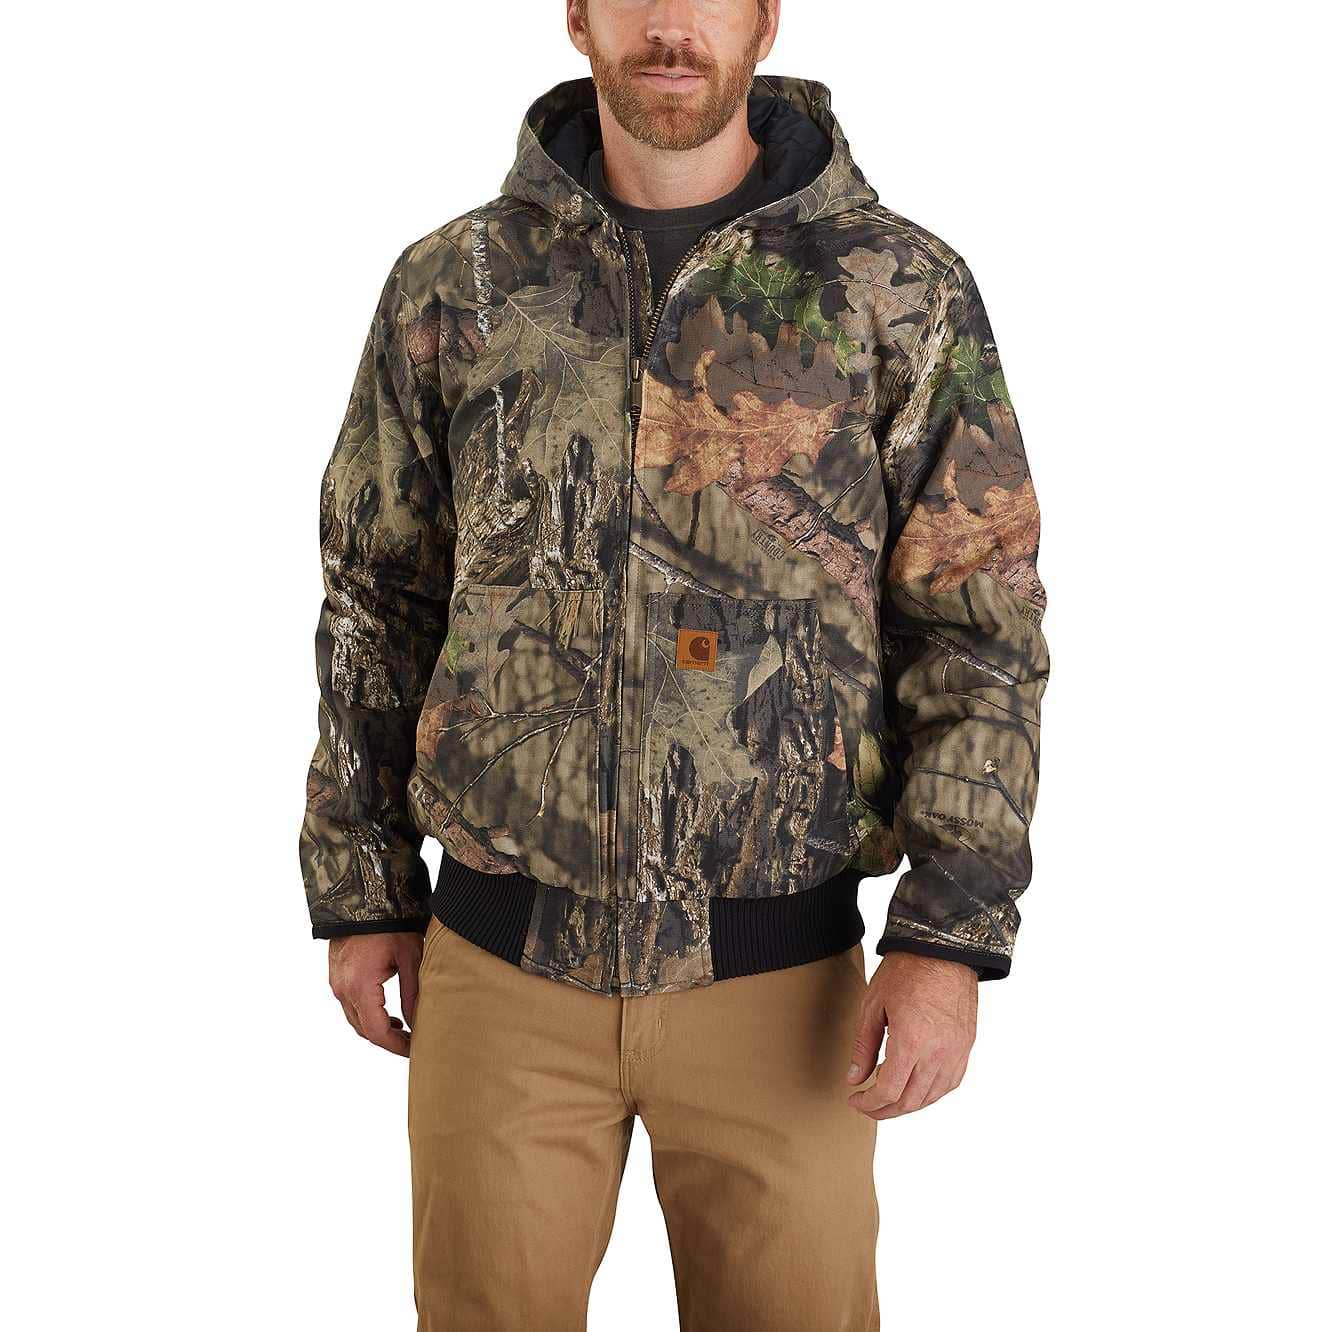 Picture of Carhartt® Hunt Duck Insulated Camo Active Jac in Mossy Oak Break-Up Country